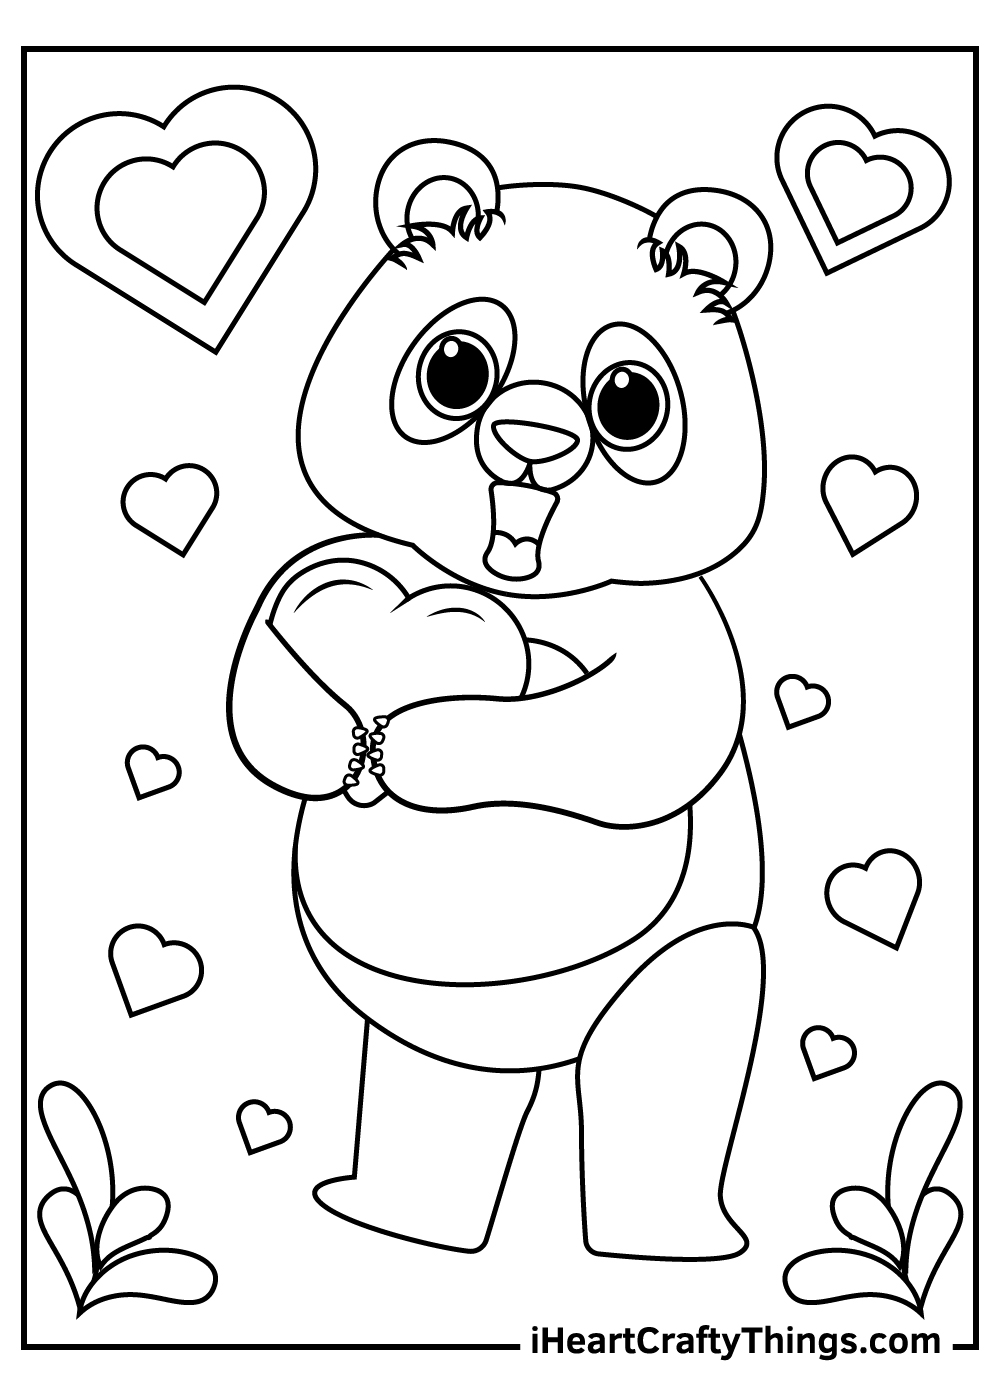 valentine's giant panda in love coloring pages